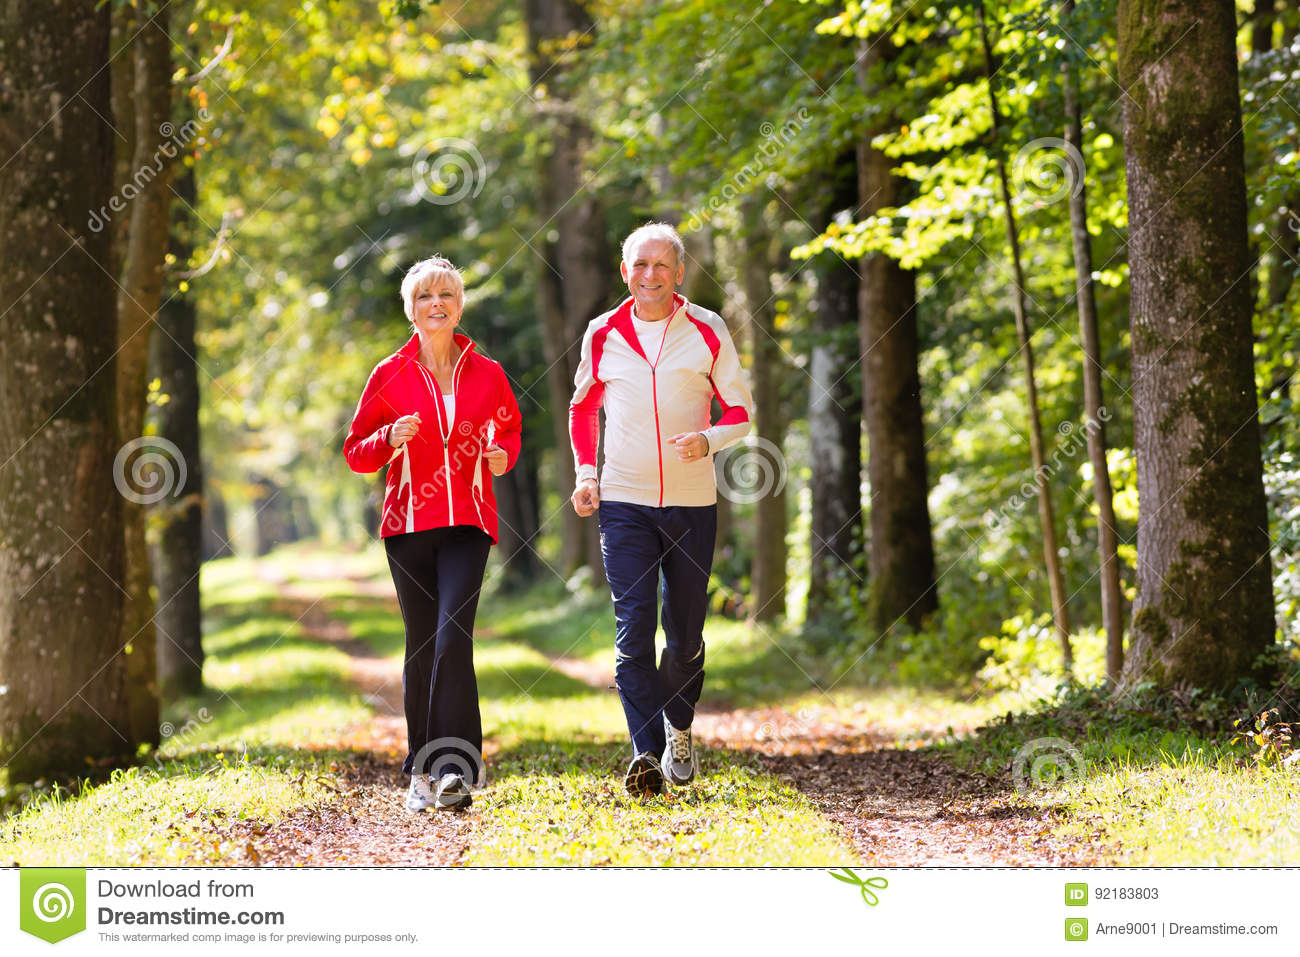 Seniors jogging on a forest road